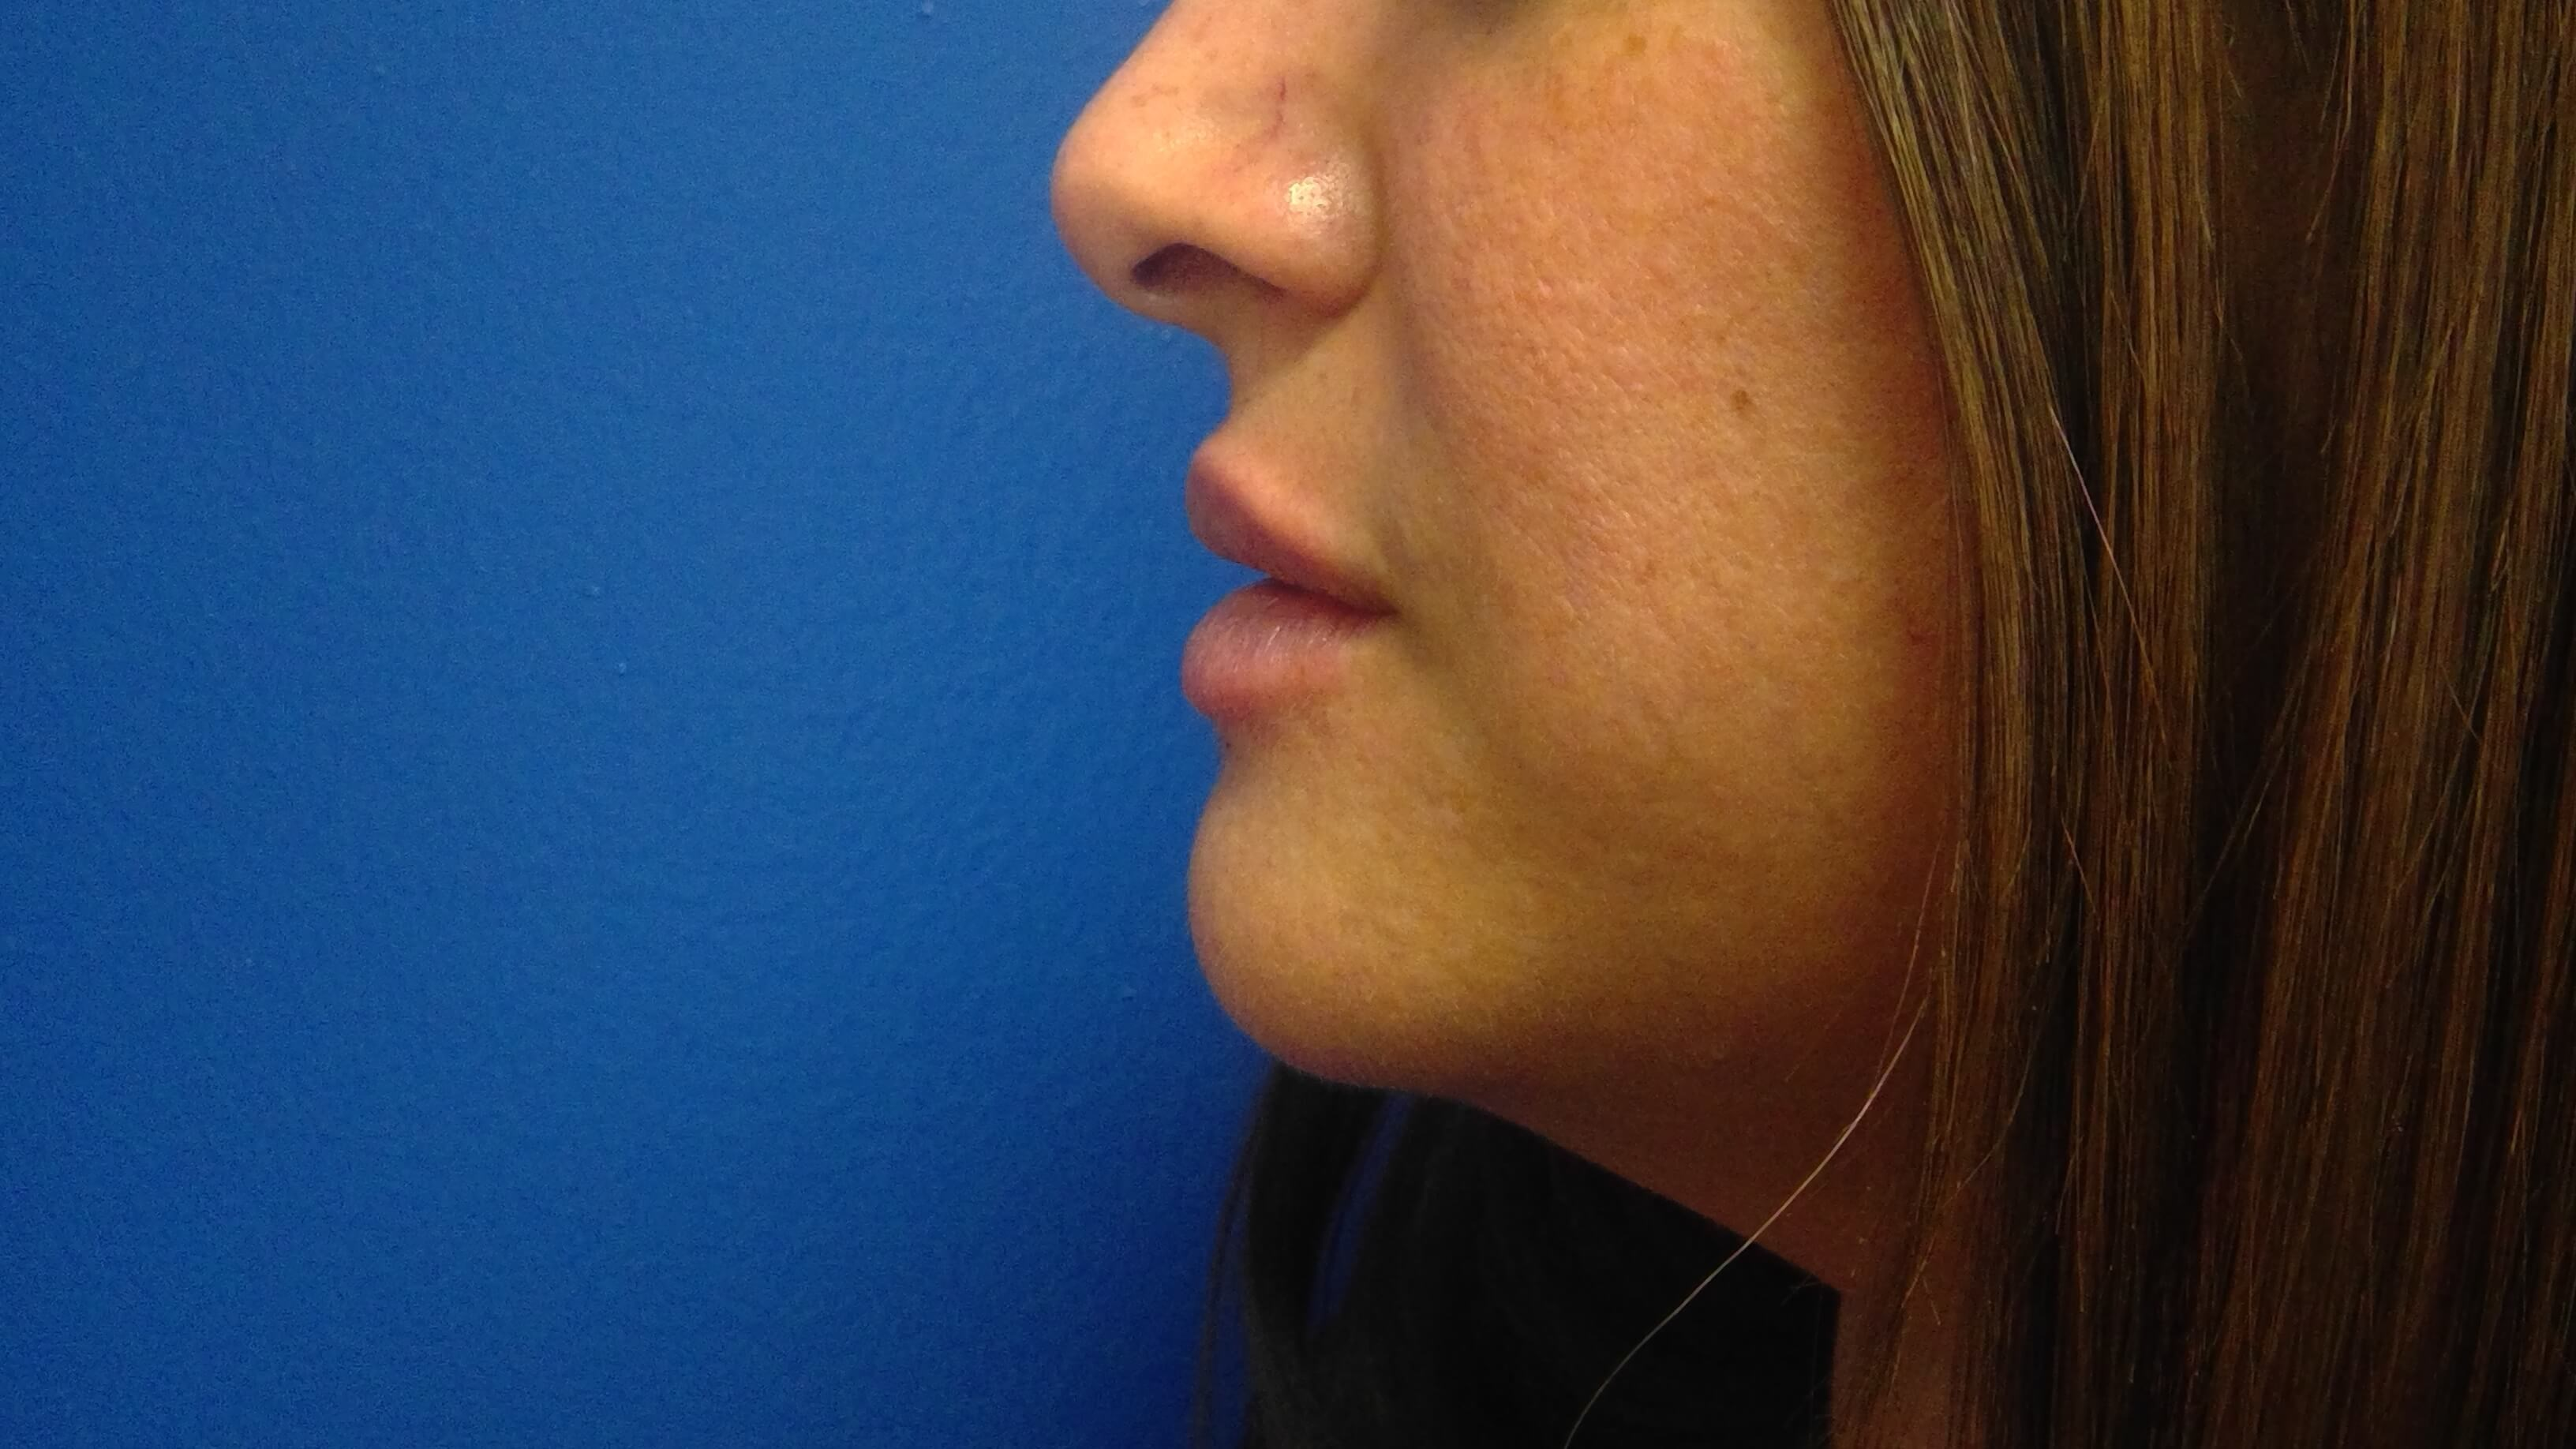 Juvederm Before & After After